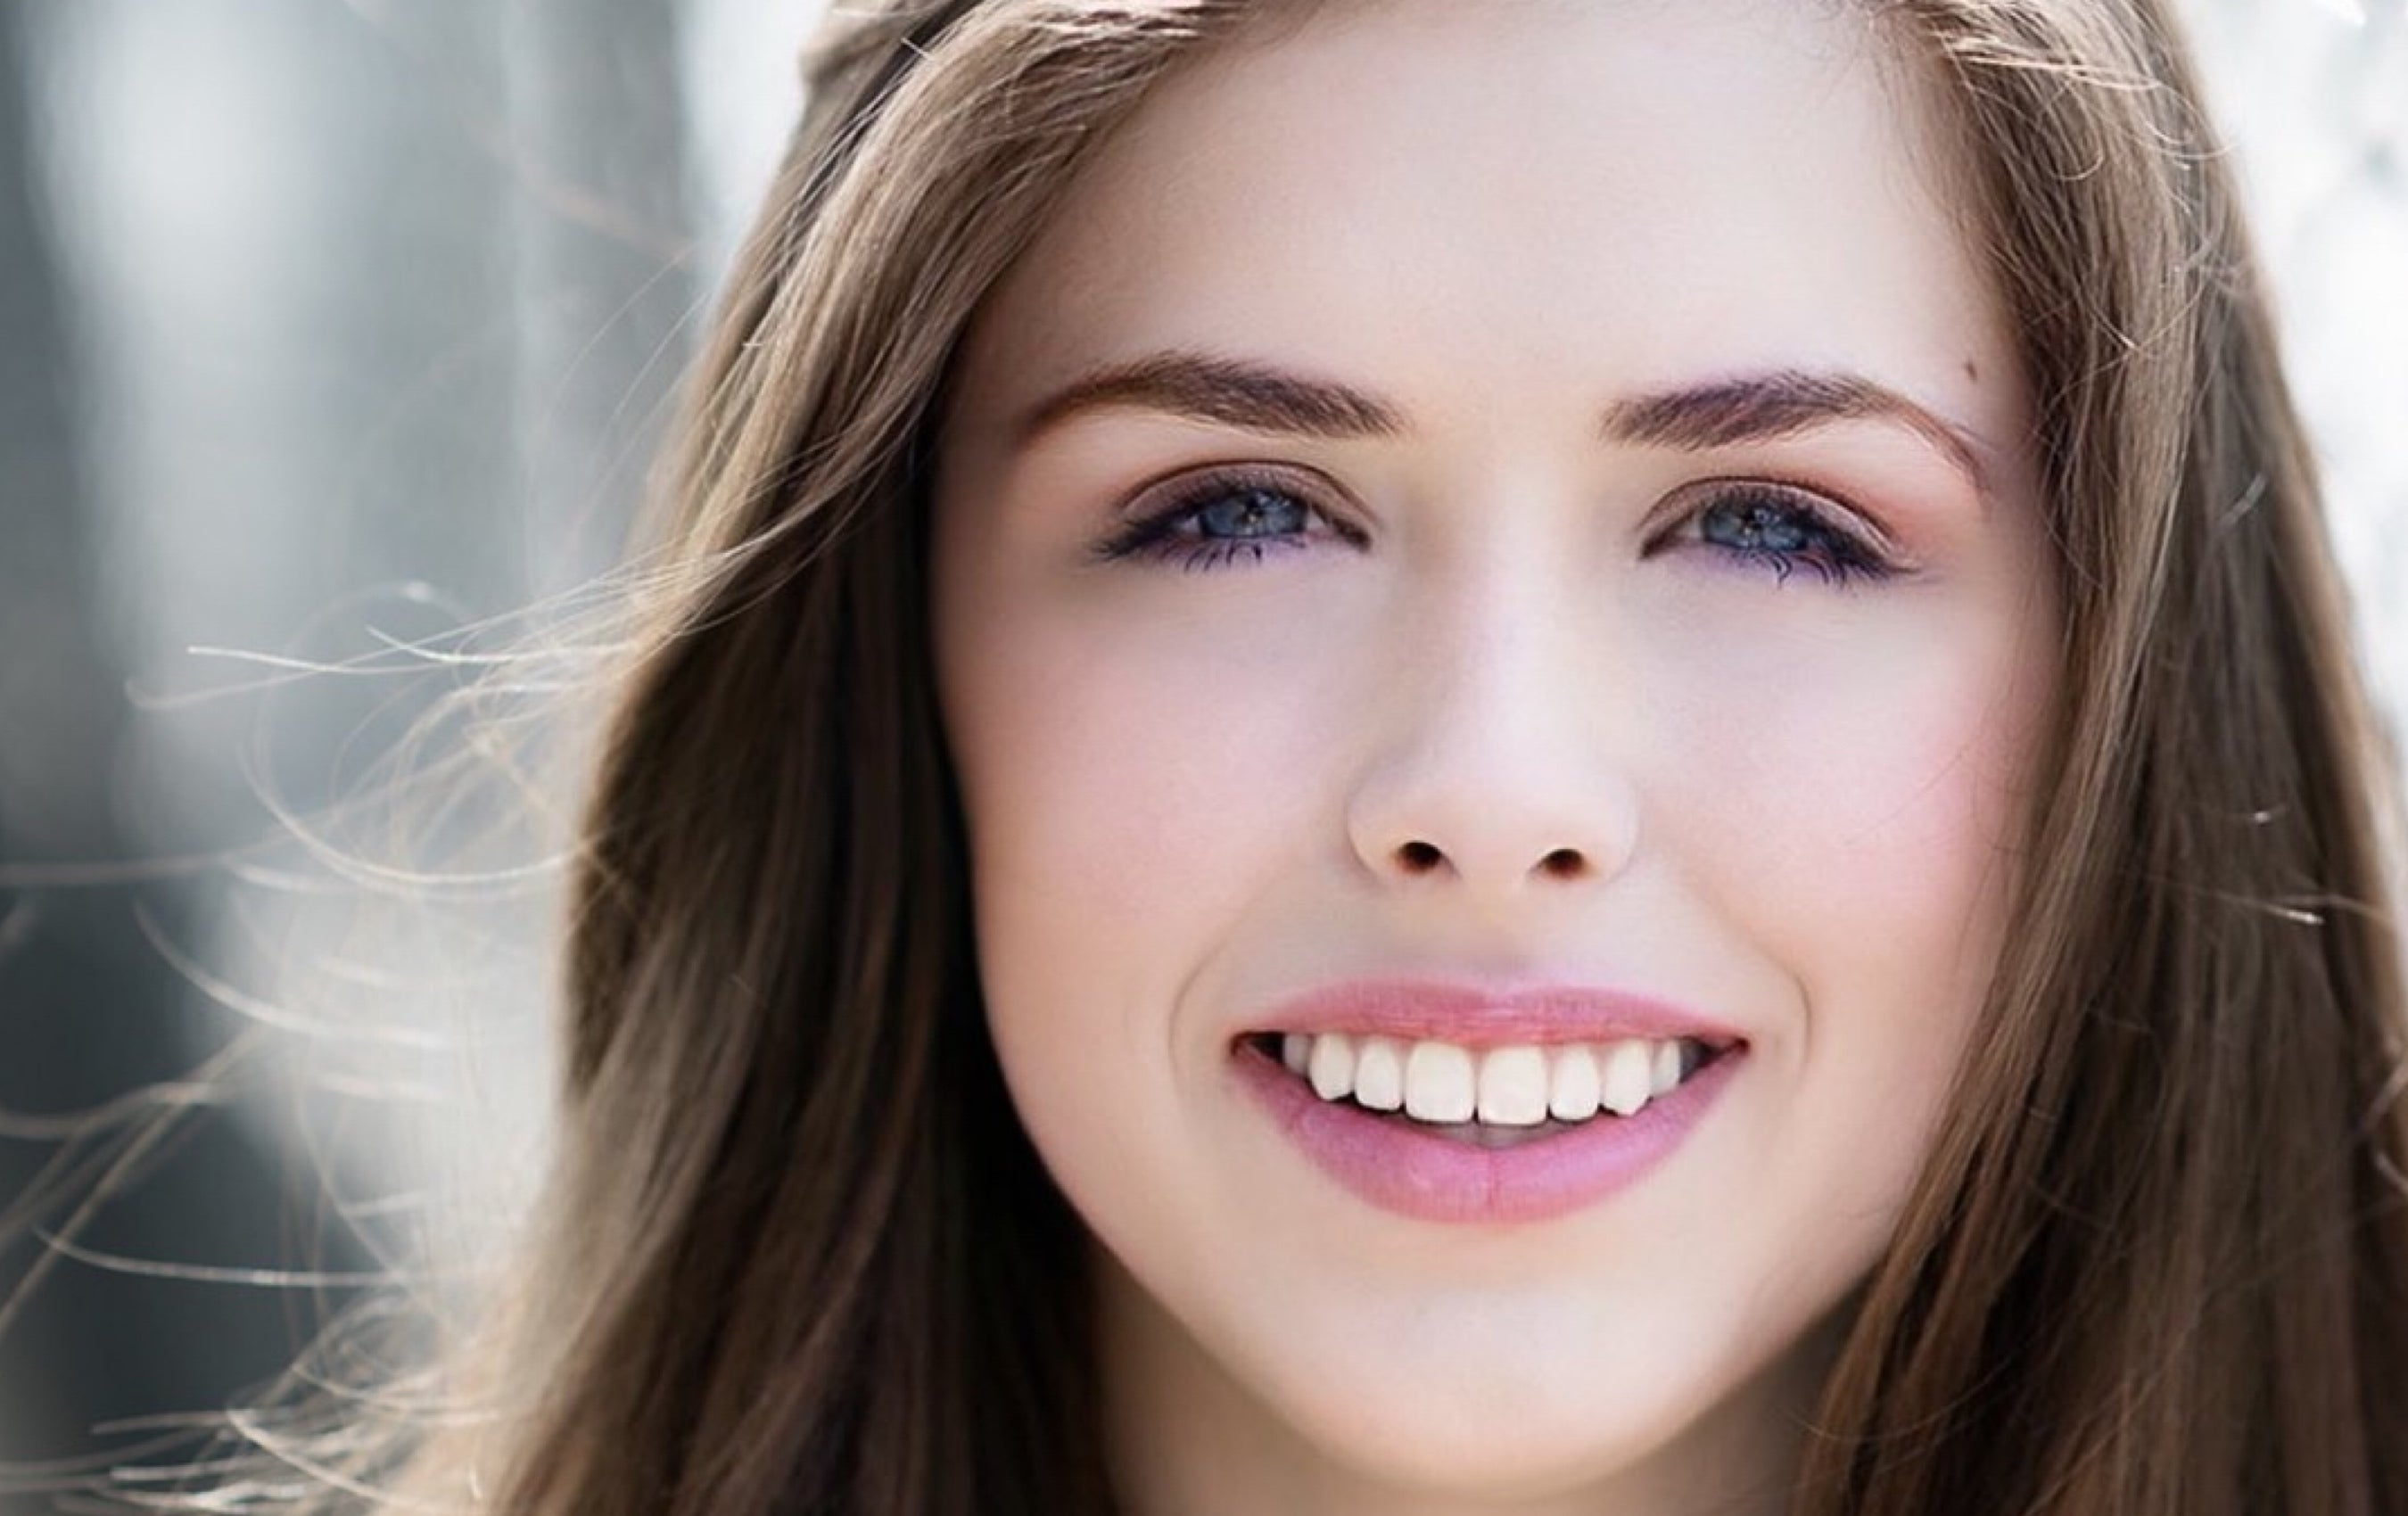 About us - photo of beautiful smiling young woman